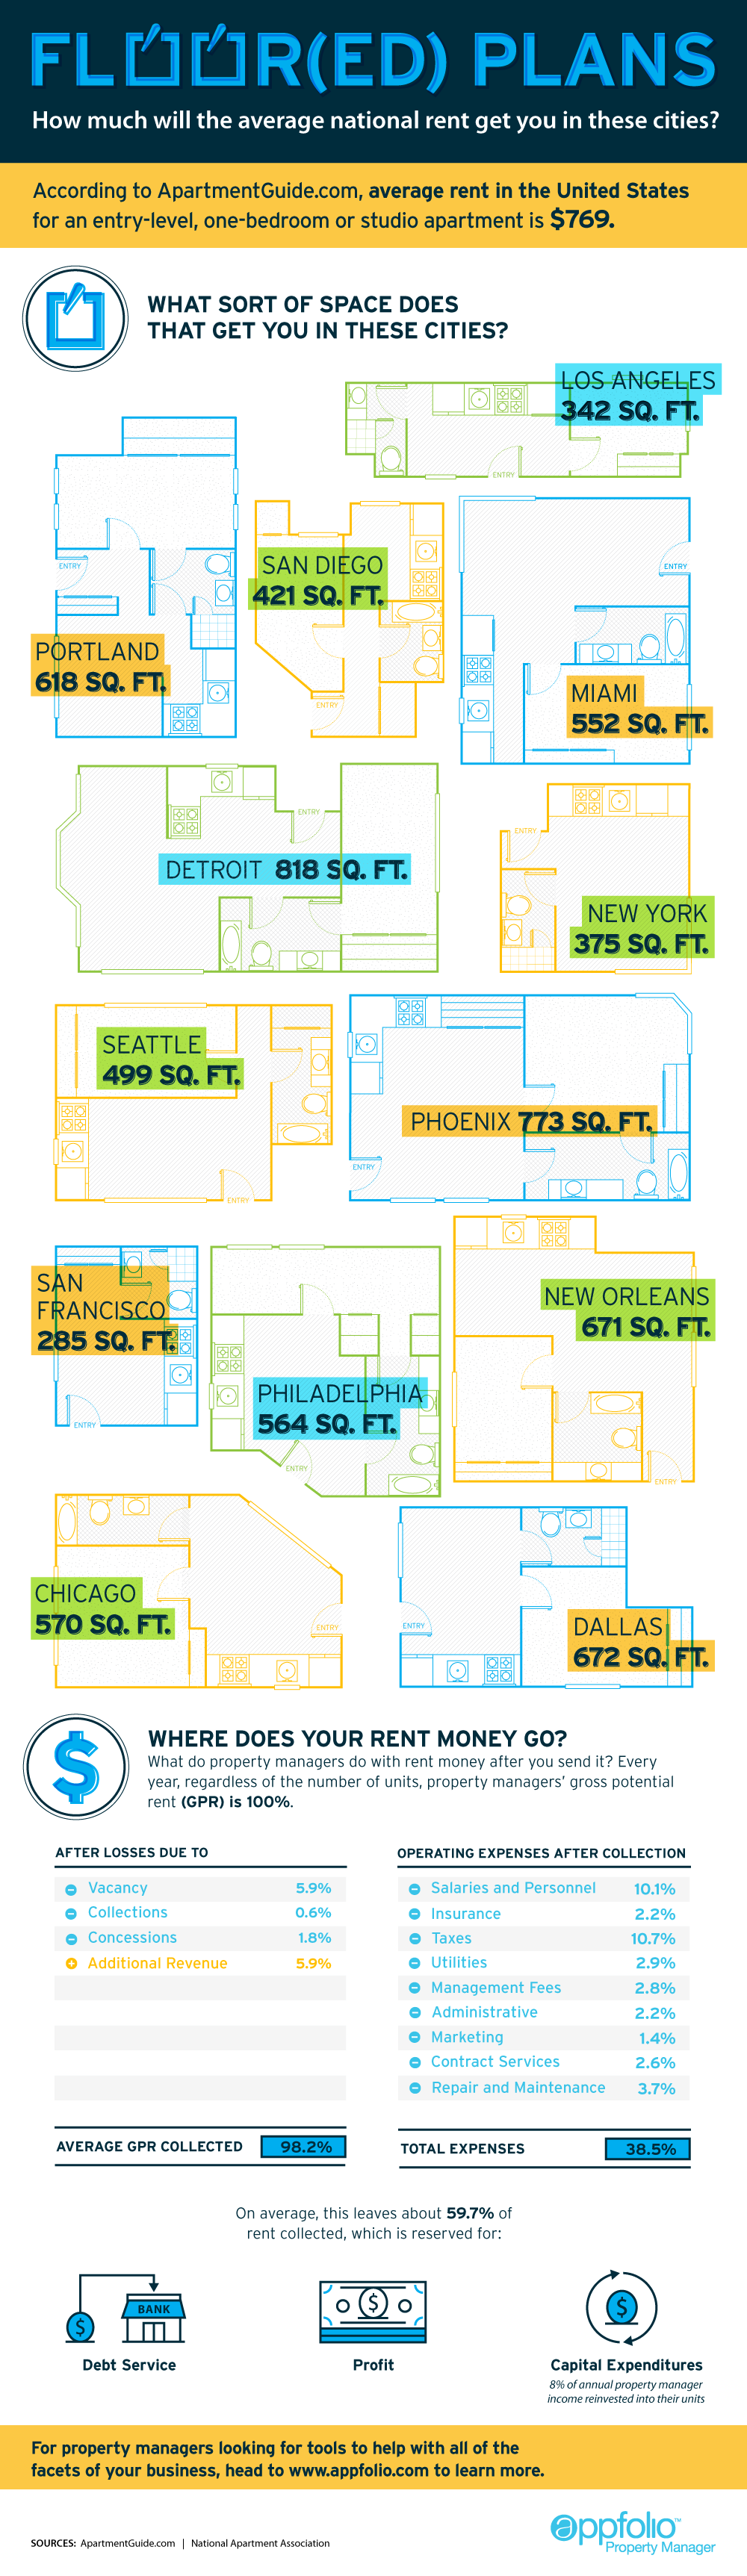 From http://www.appfolio.com/blog/2015/05/how-much-will-the-average-national-rent-get-you-infographic/